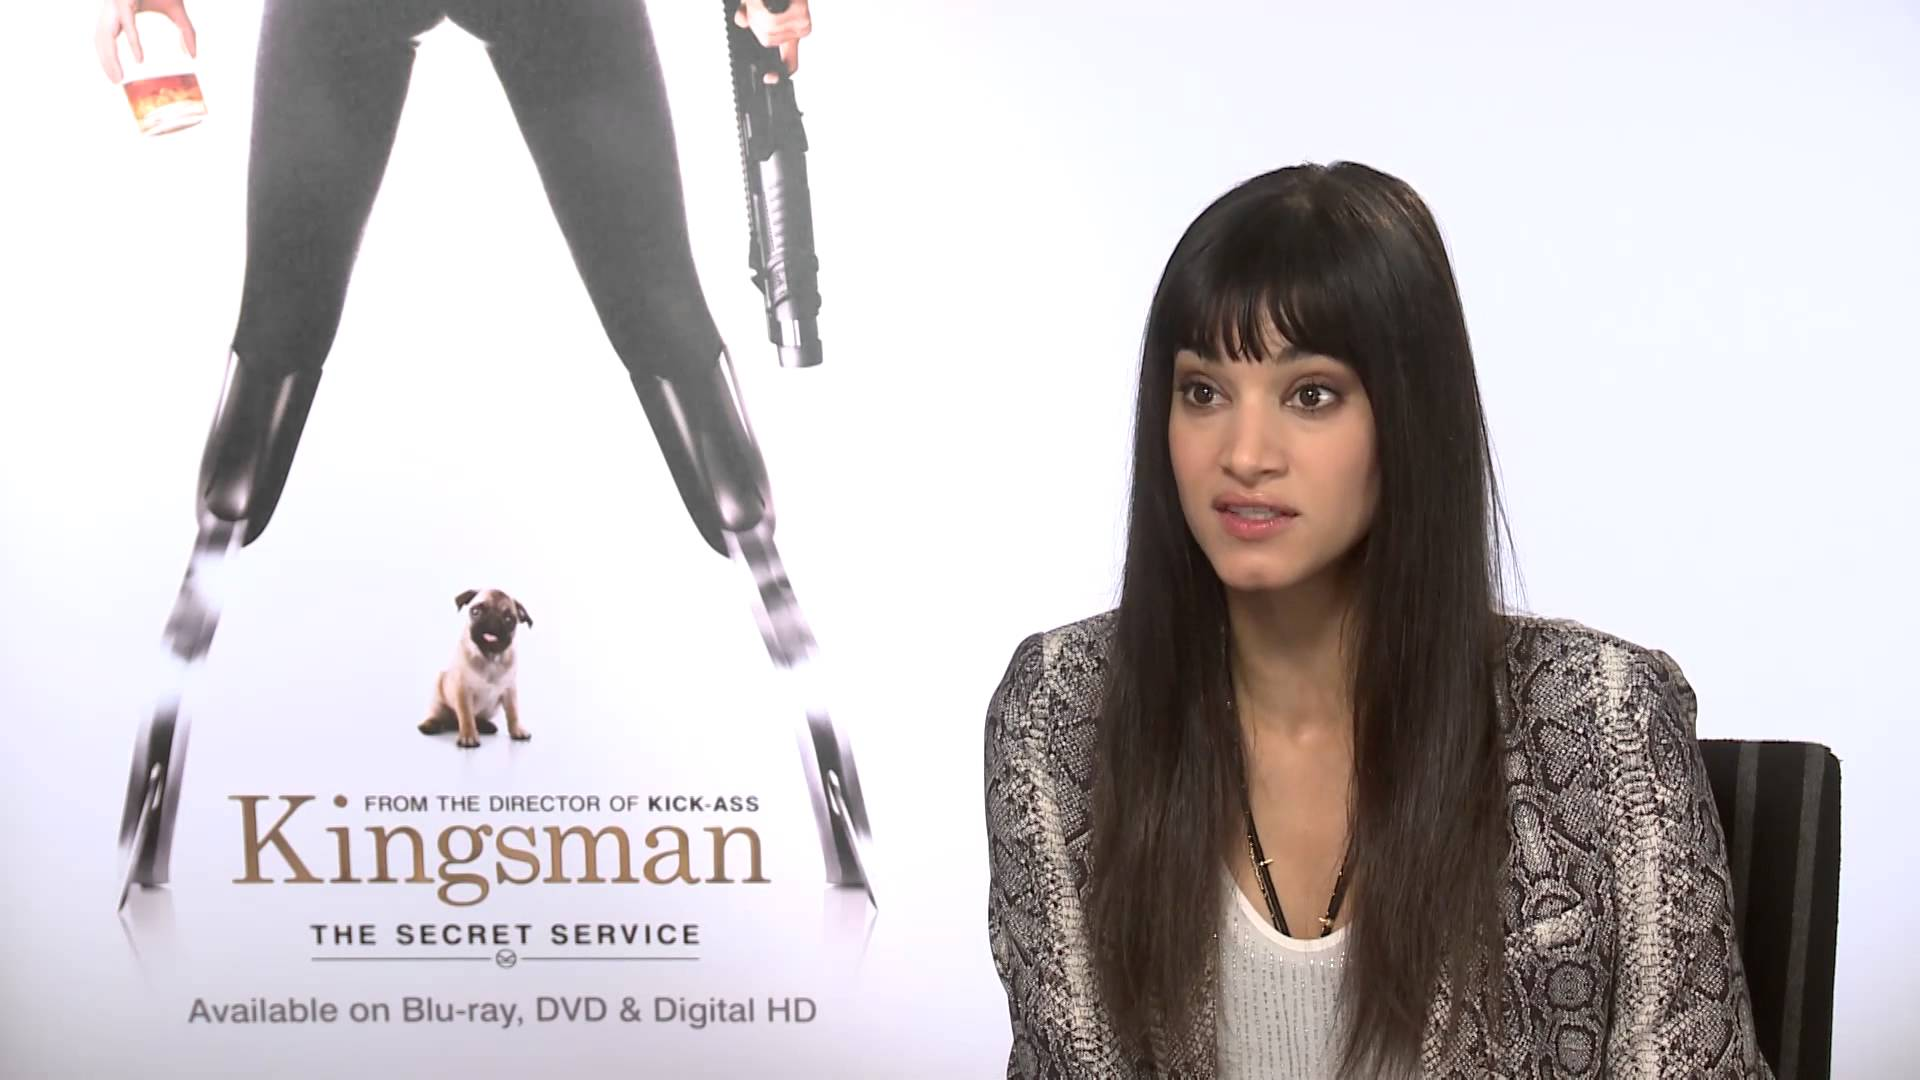 Kingsman The Secret Service Interview: Exclusive Interview: Sofia Boutella On Playing Evil In